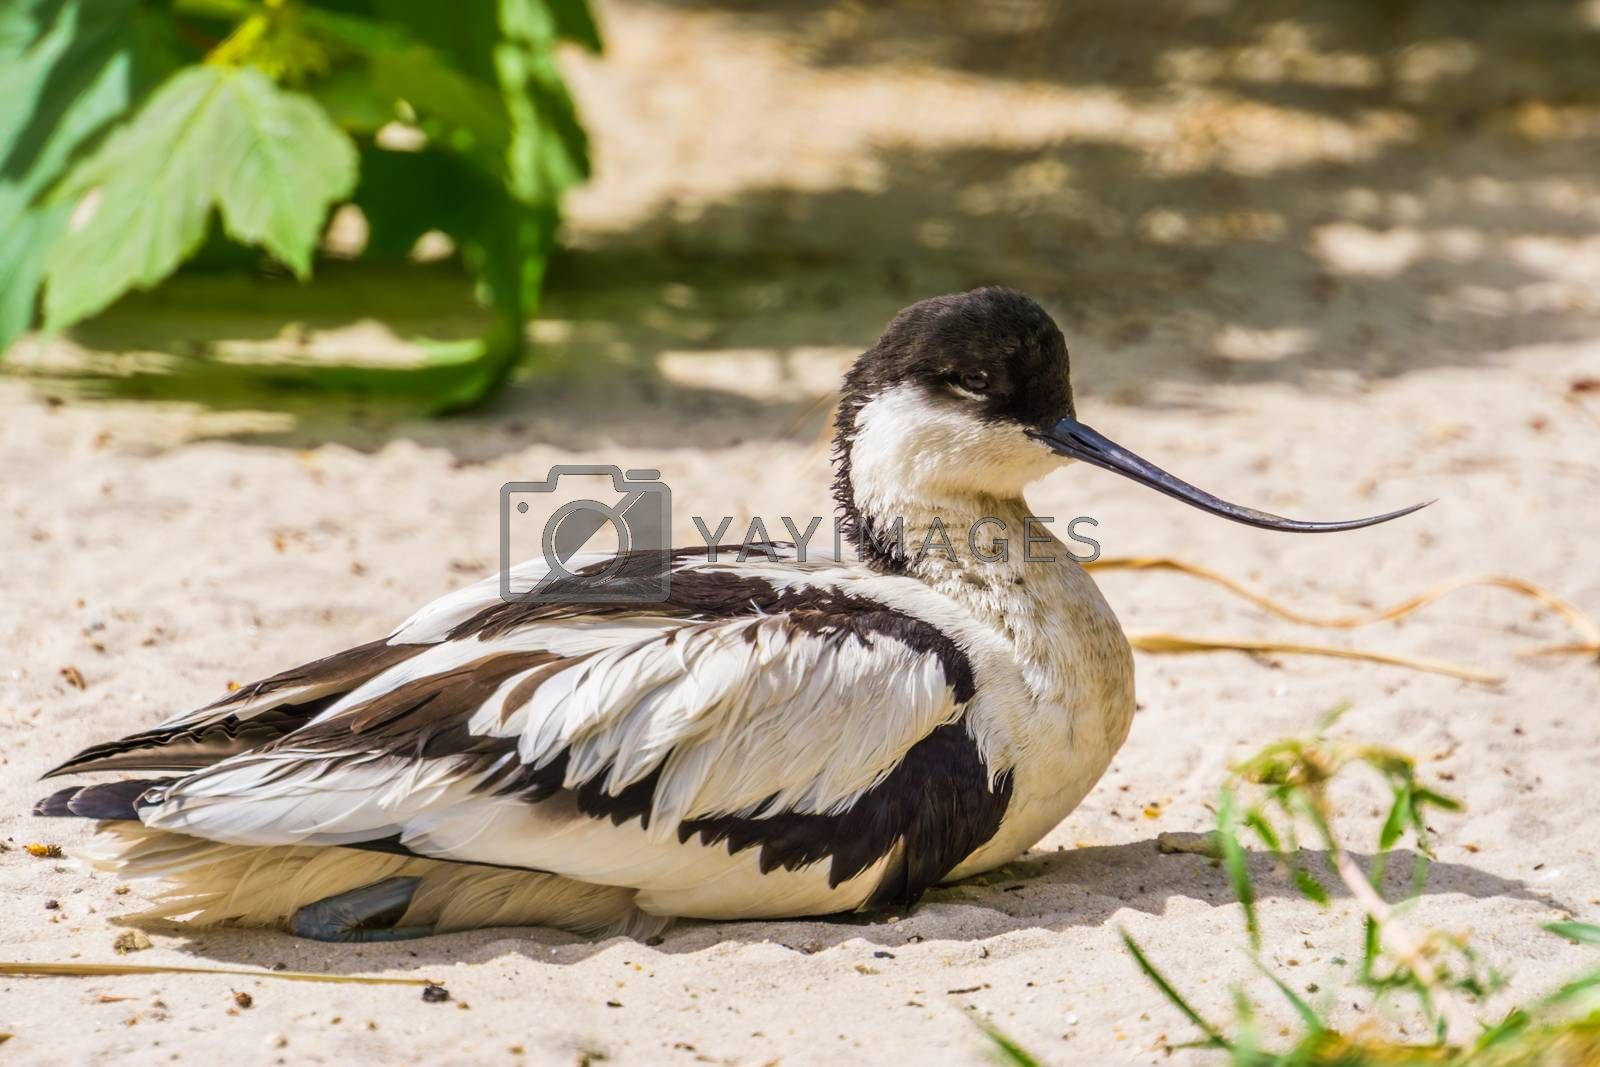 closeup portrait of a pied avocet sitting on the ground, black and white wading bird with a curved bill, migratory bird from Eurasia